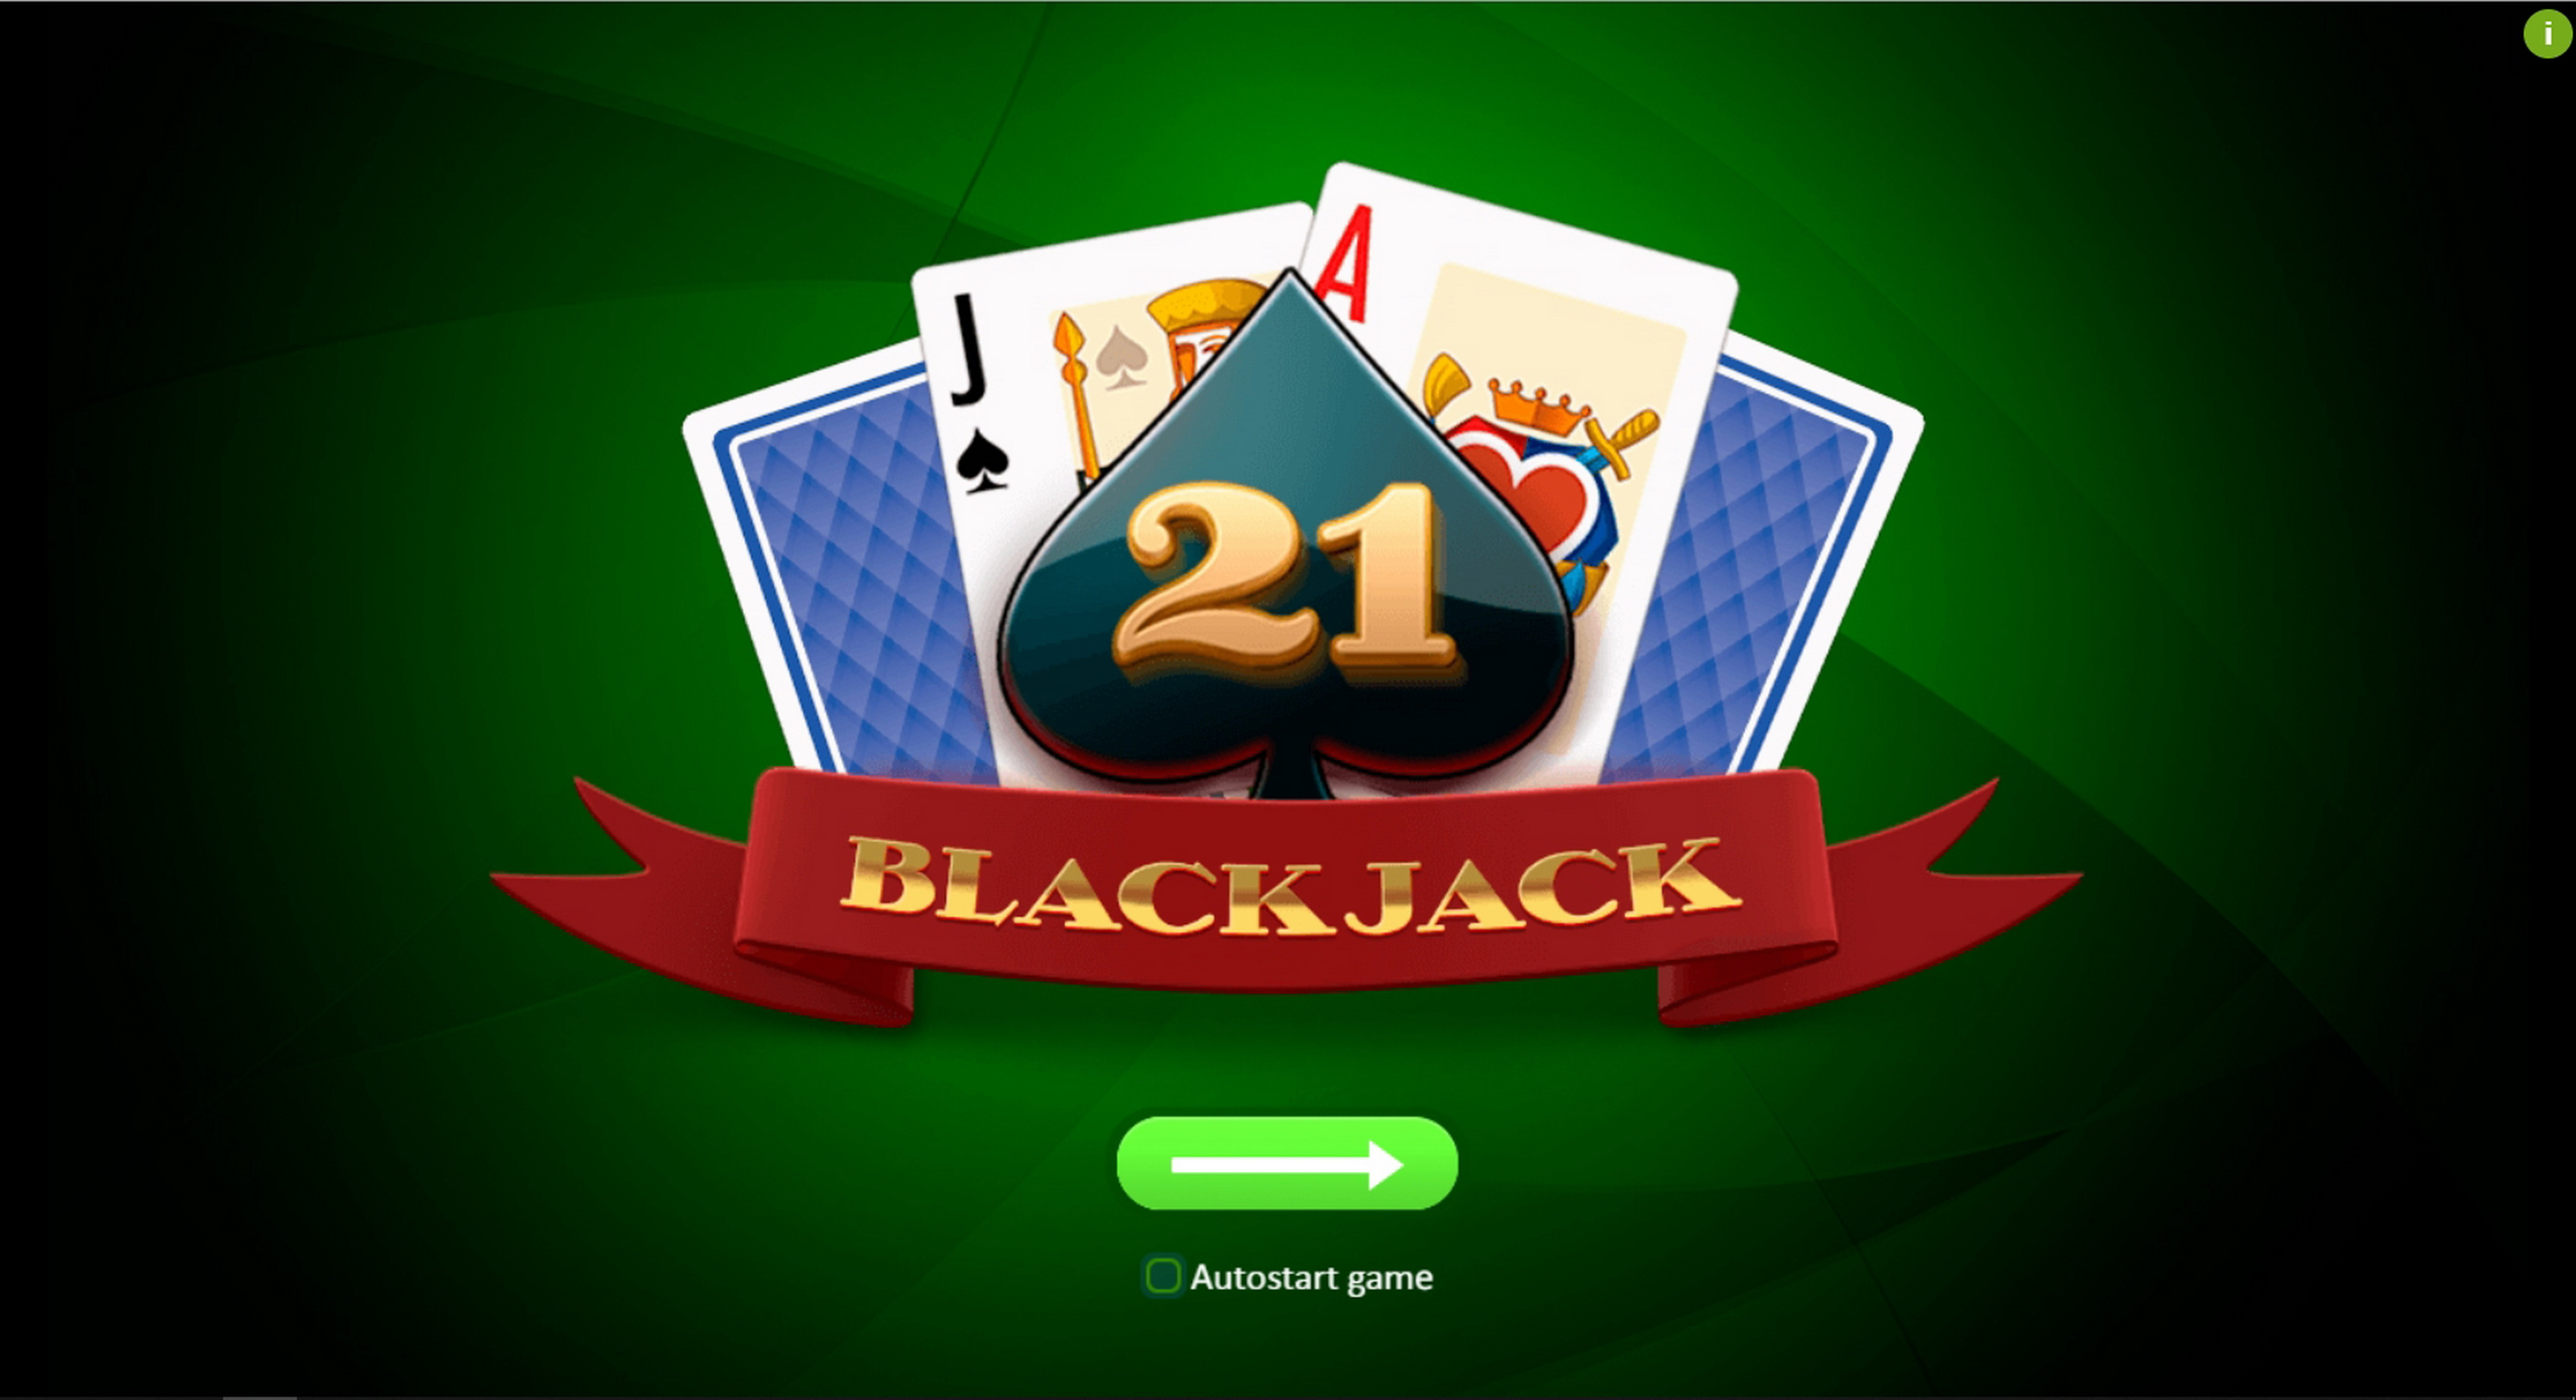 Play BlackJack High (Playson) Free Casino Slot Game by Playson